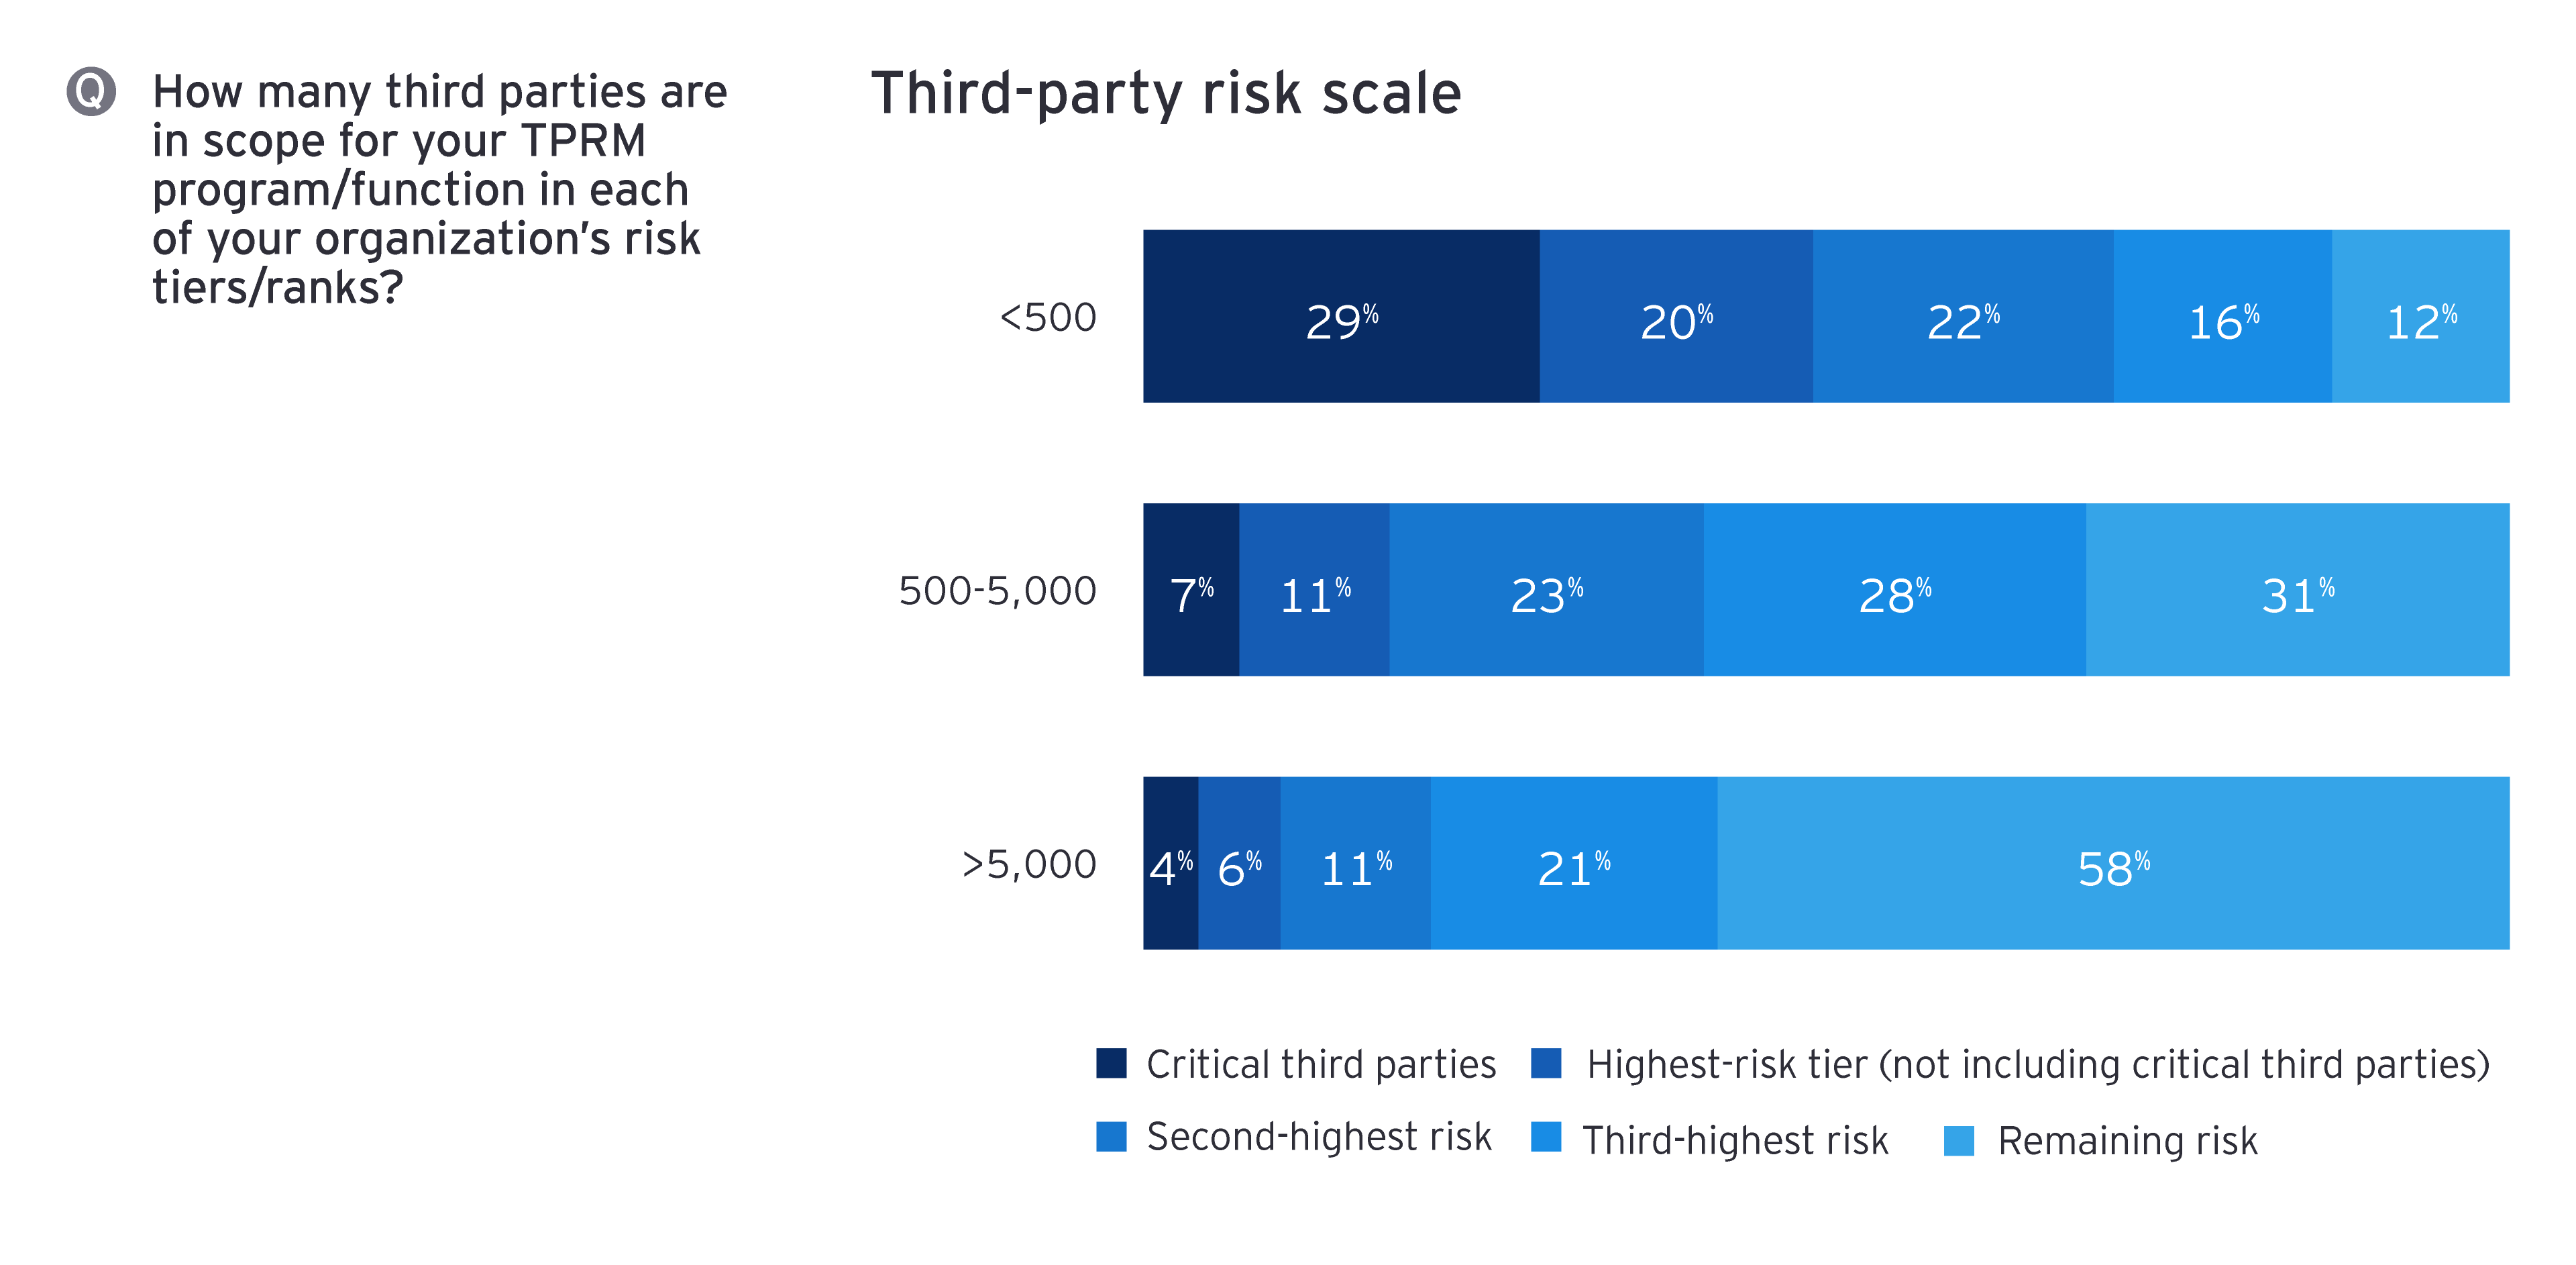 Third-party risk scale